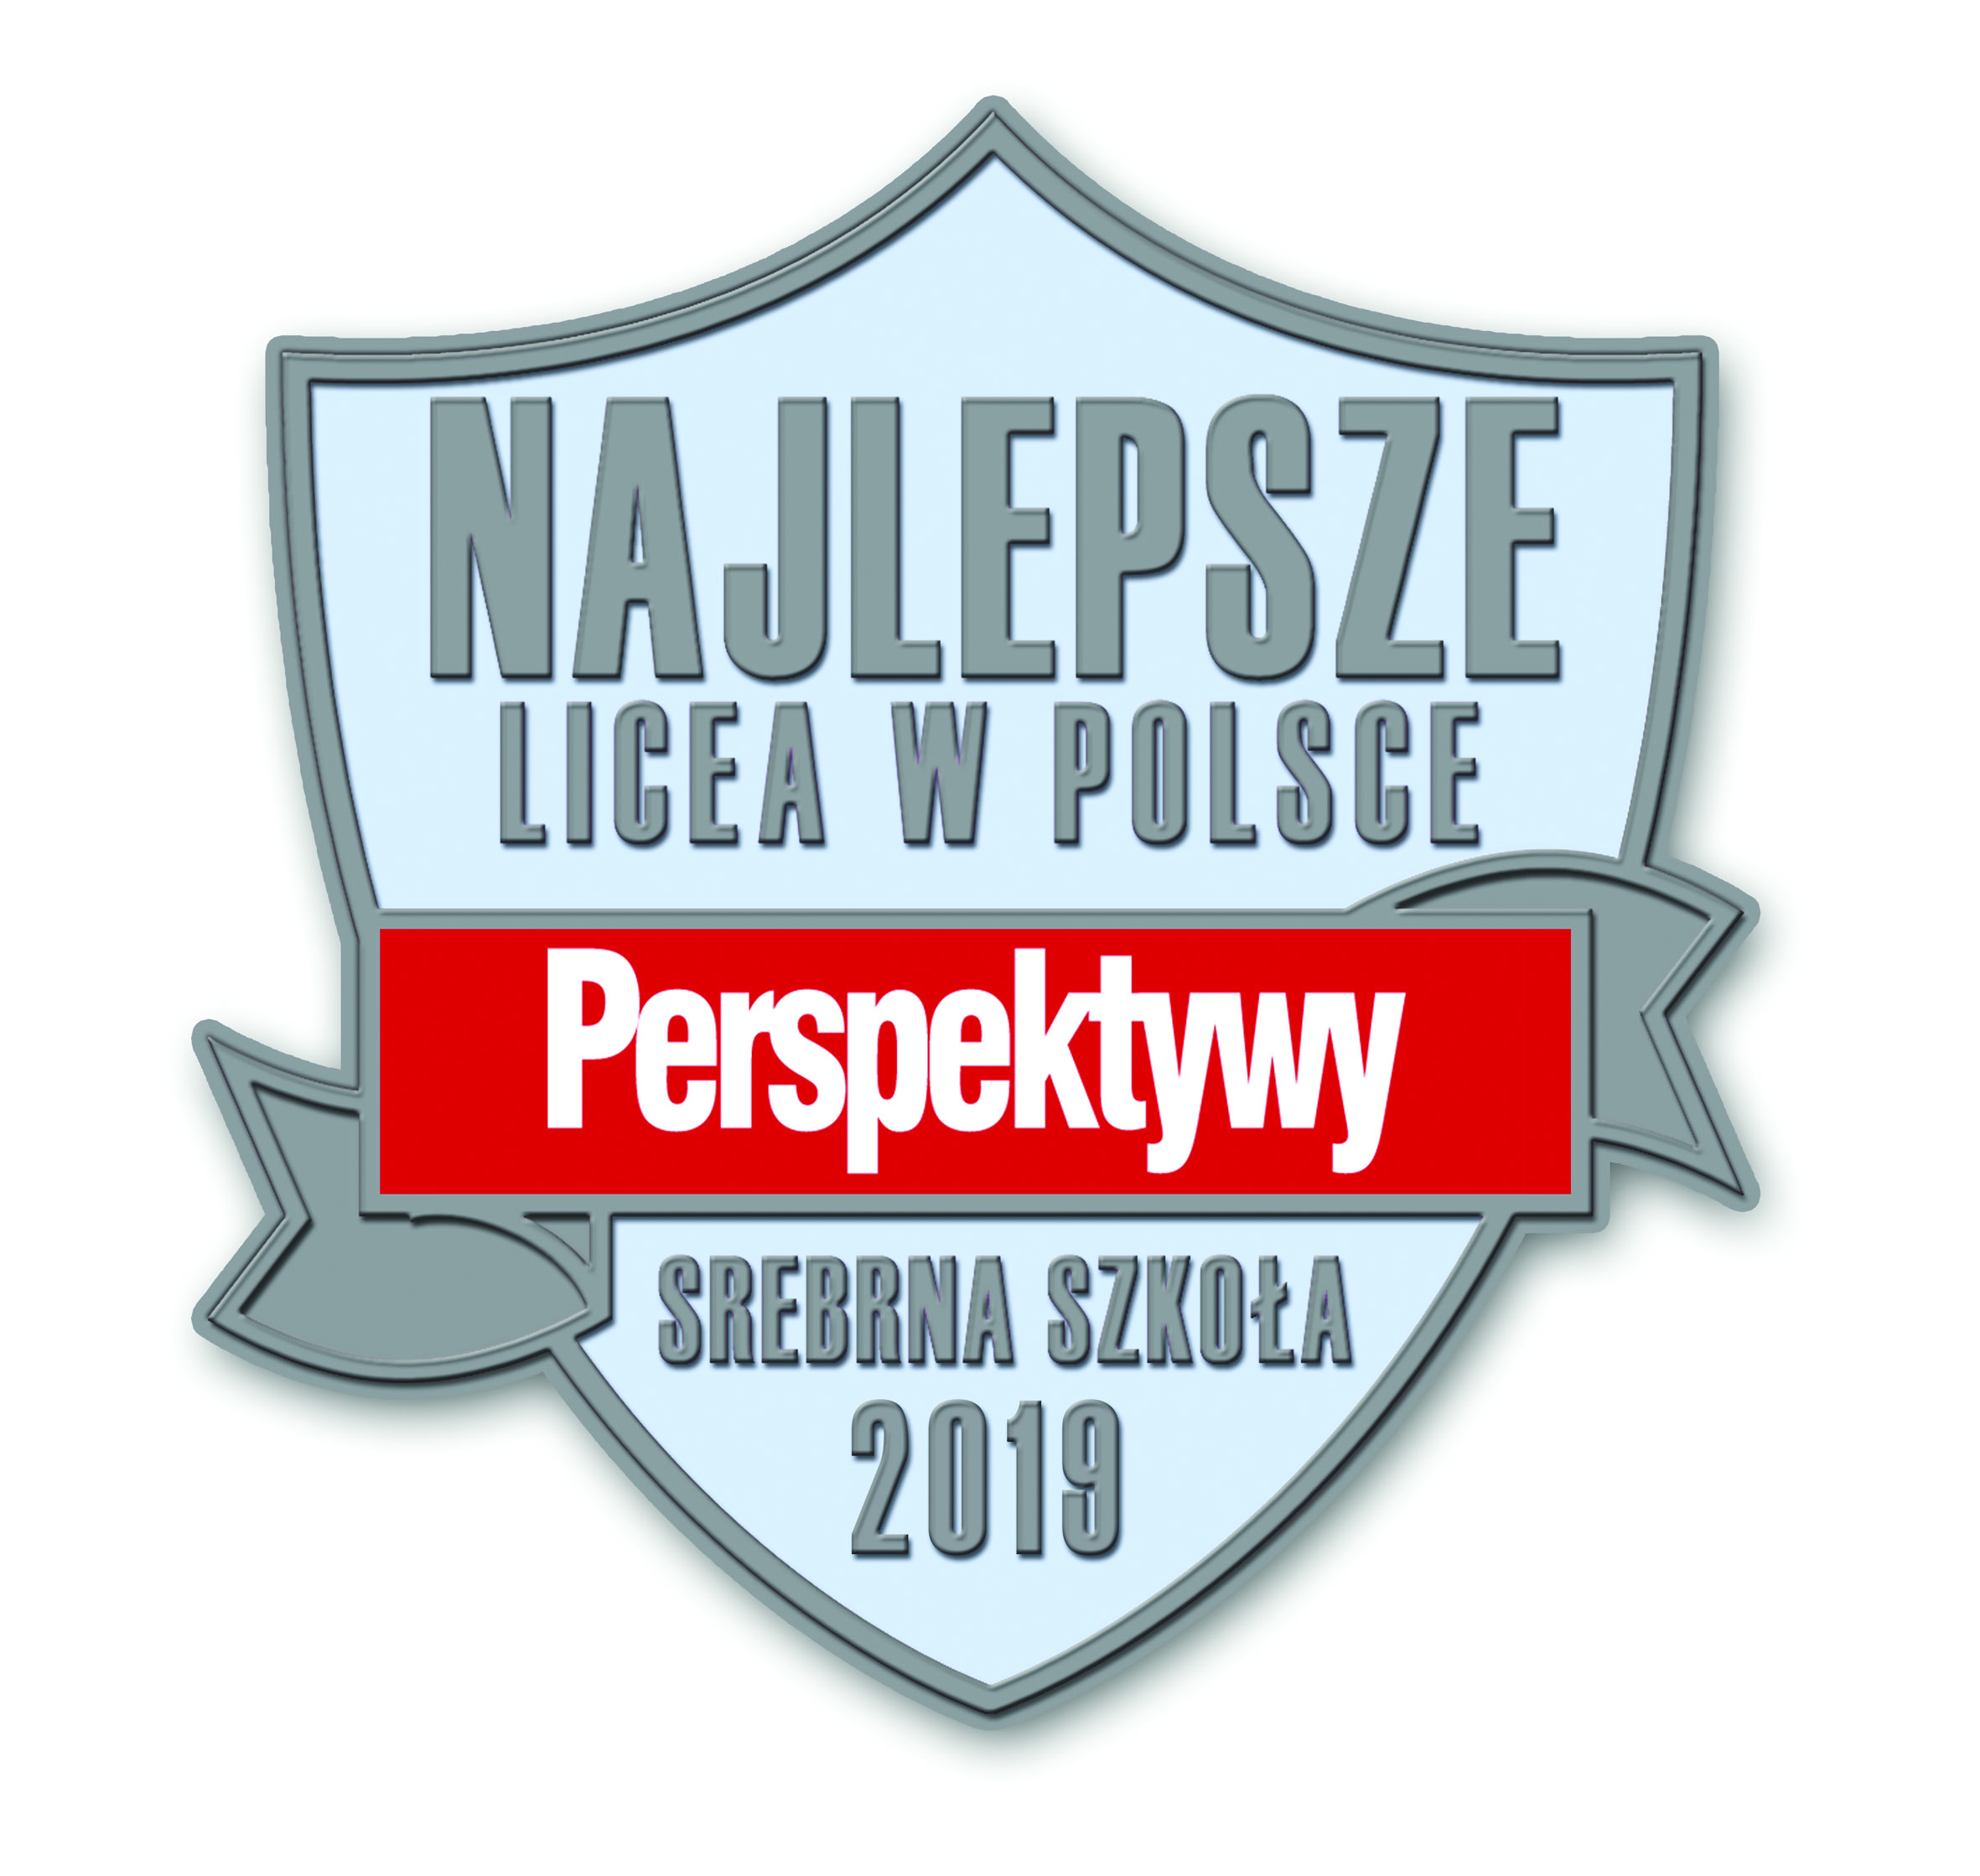 Najlepsze licea w Polsce. Ranking Perspektywy 2019